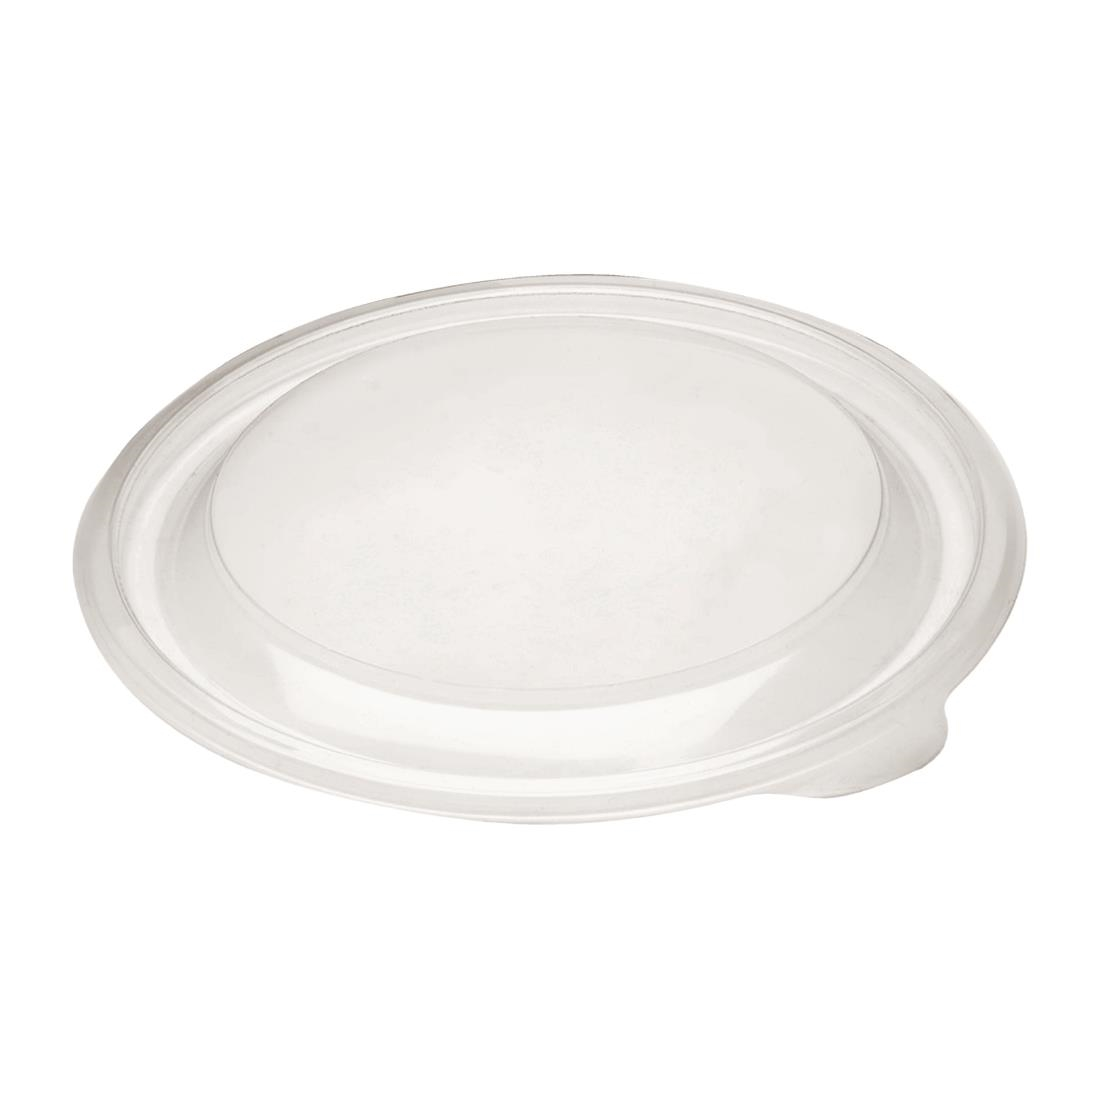 Image of Fastpac Small Round Food Container Lids 375ml / 13oz (Pack of 500) Pack of 500